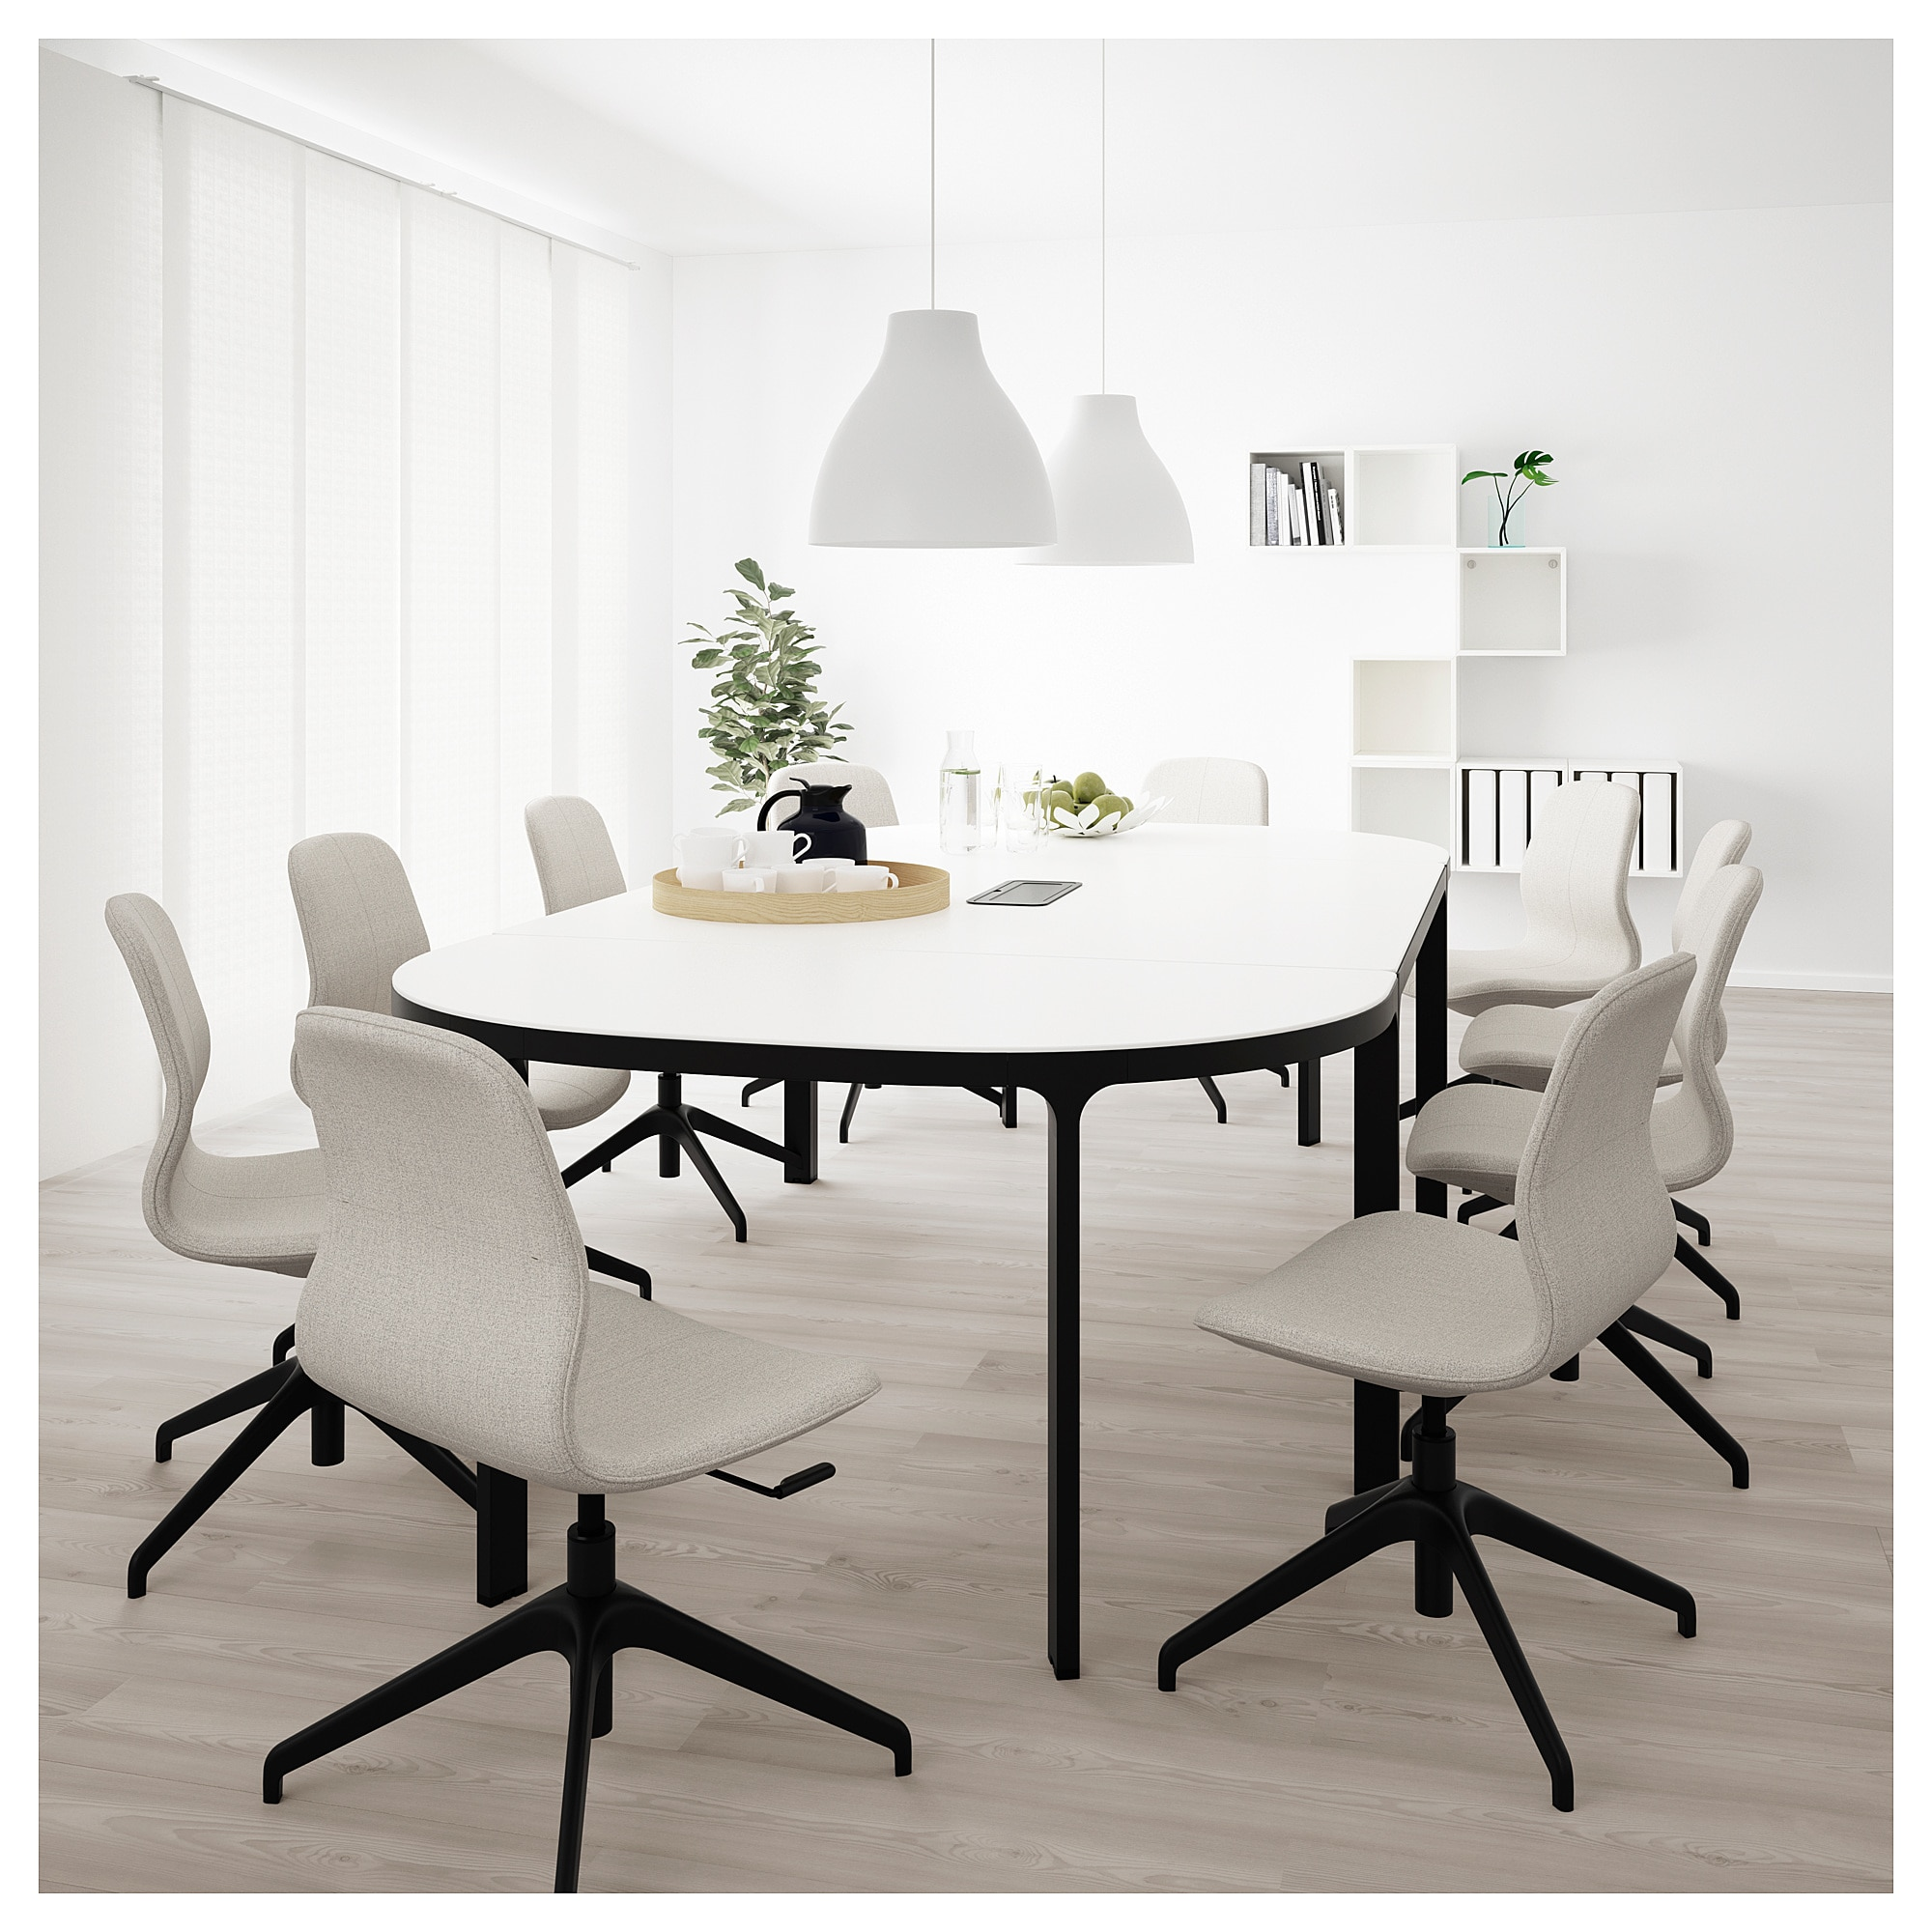 Bekant Conference Table White Black 110 1 4x55 1 8 280x140